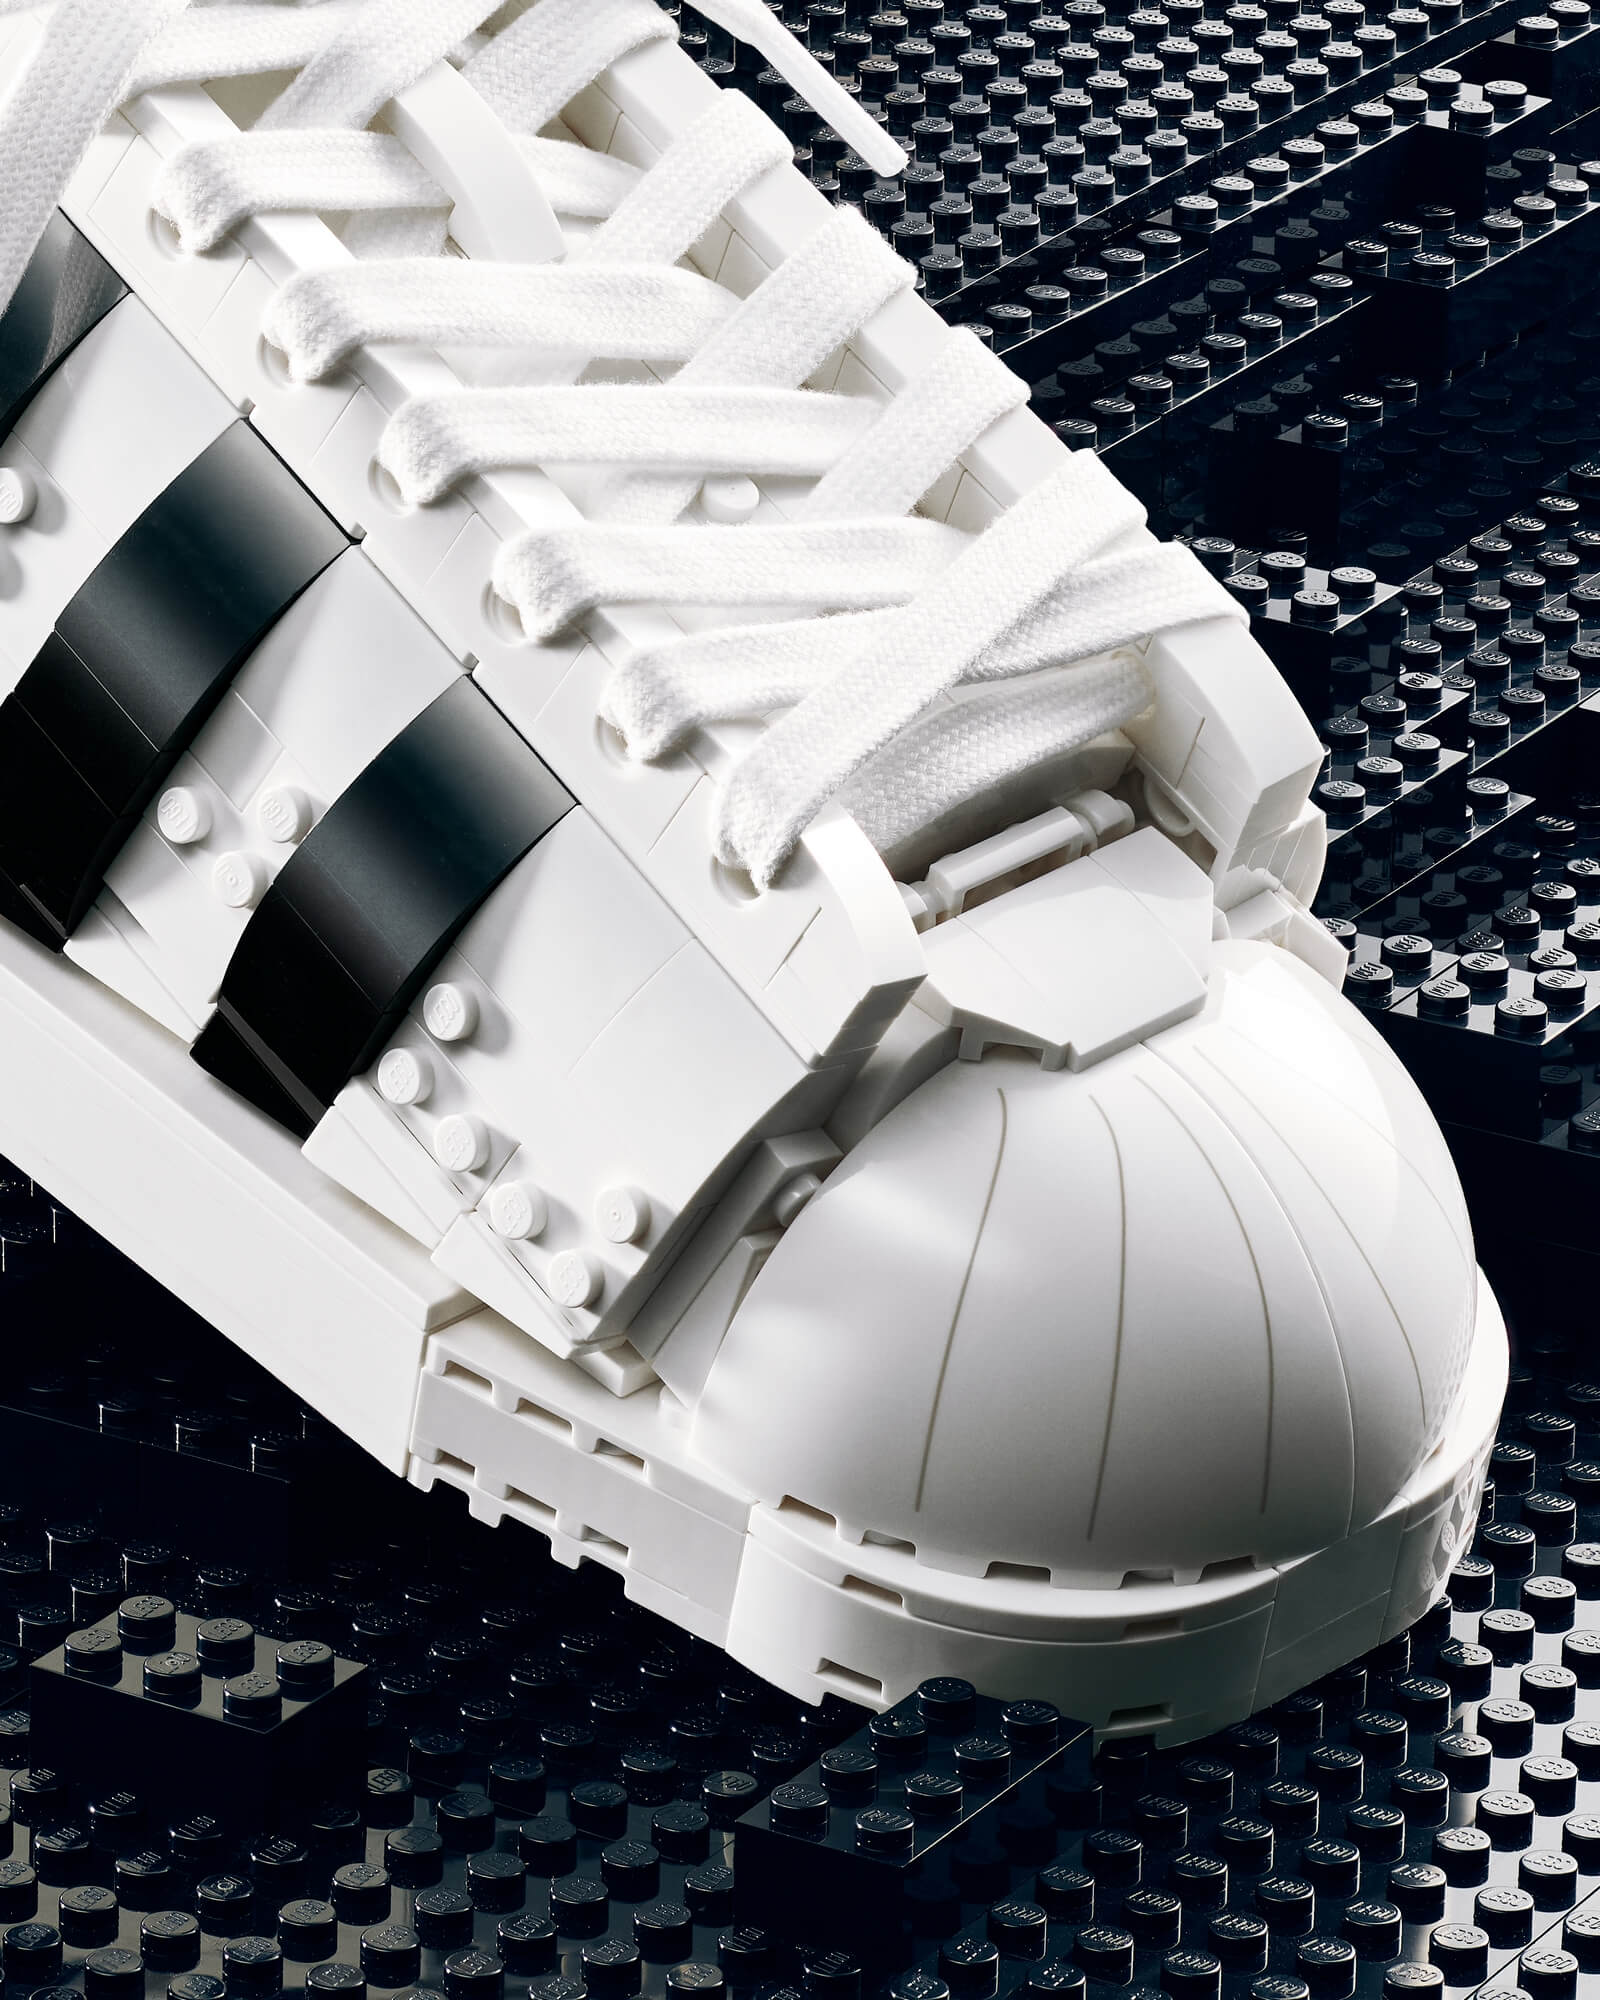 Details of the Toebox - LEGO x adidas Originals Superstar buildable kit